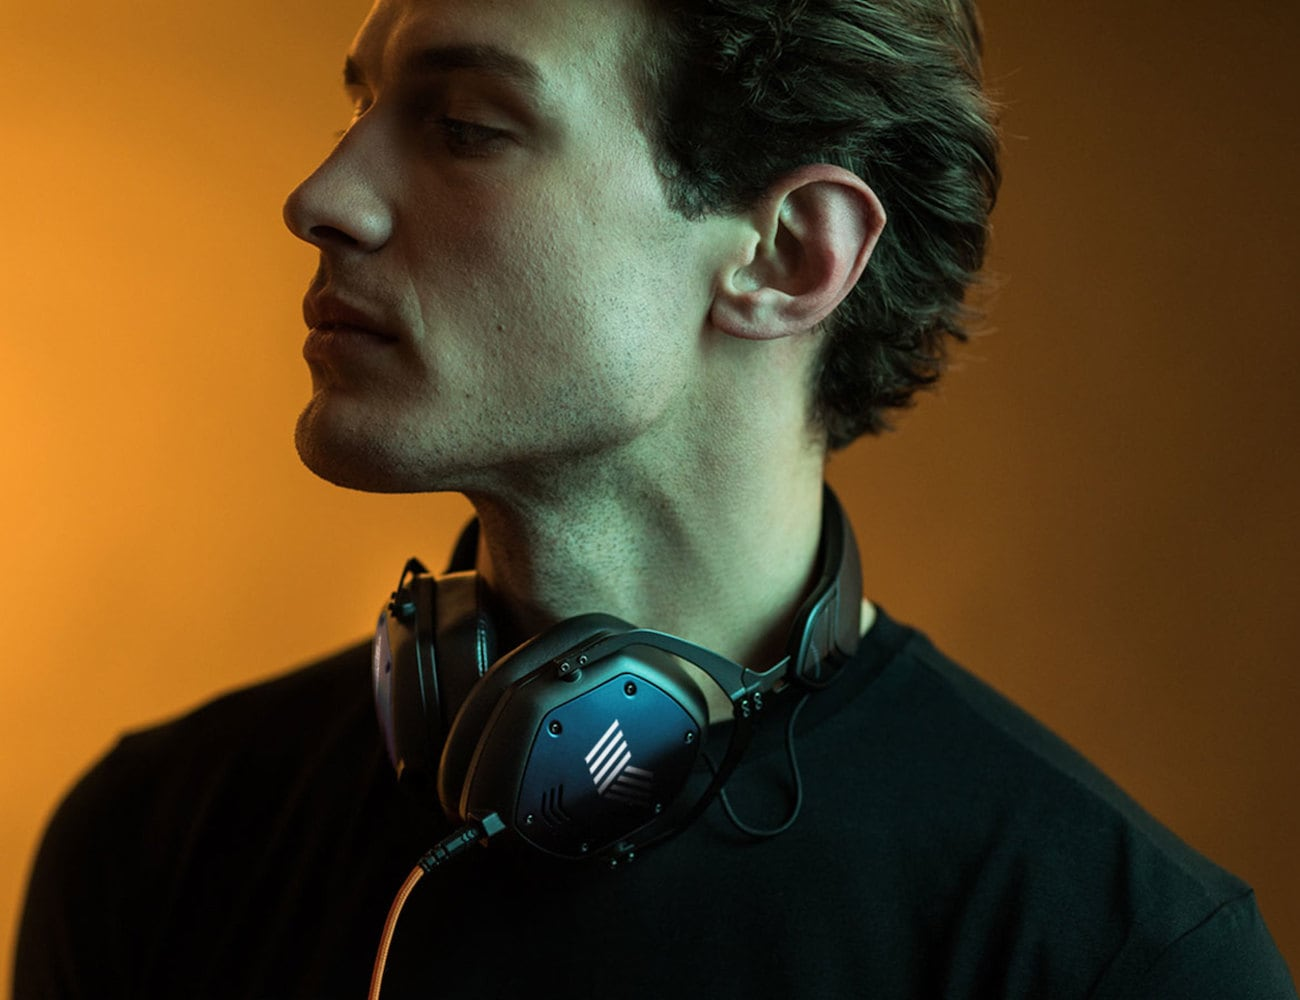 V-MODA Crossfade M-100 Master High-Resolution Audio Headphones provide detailed and clear sound